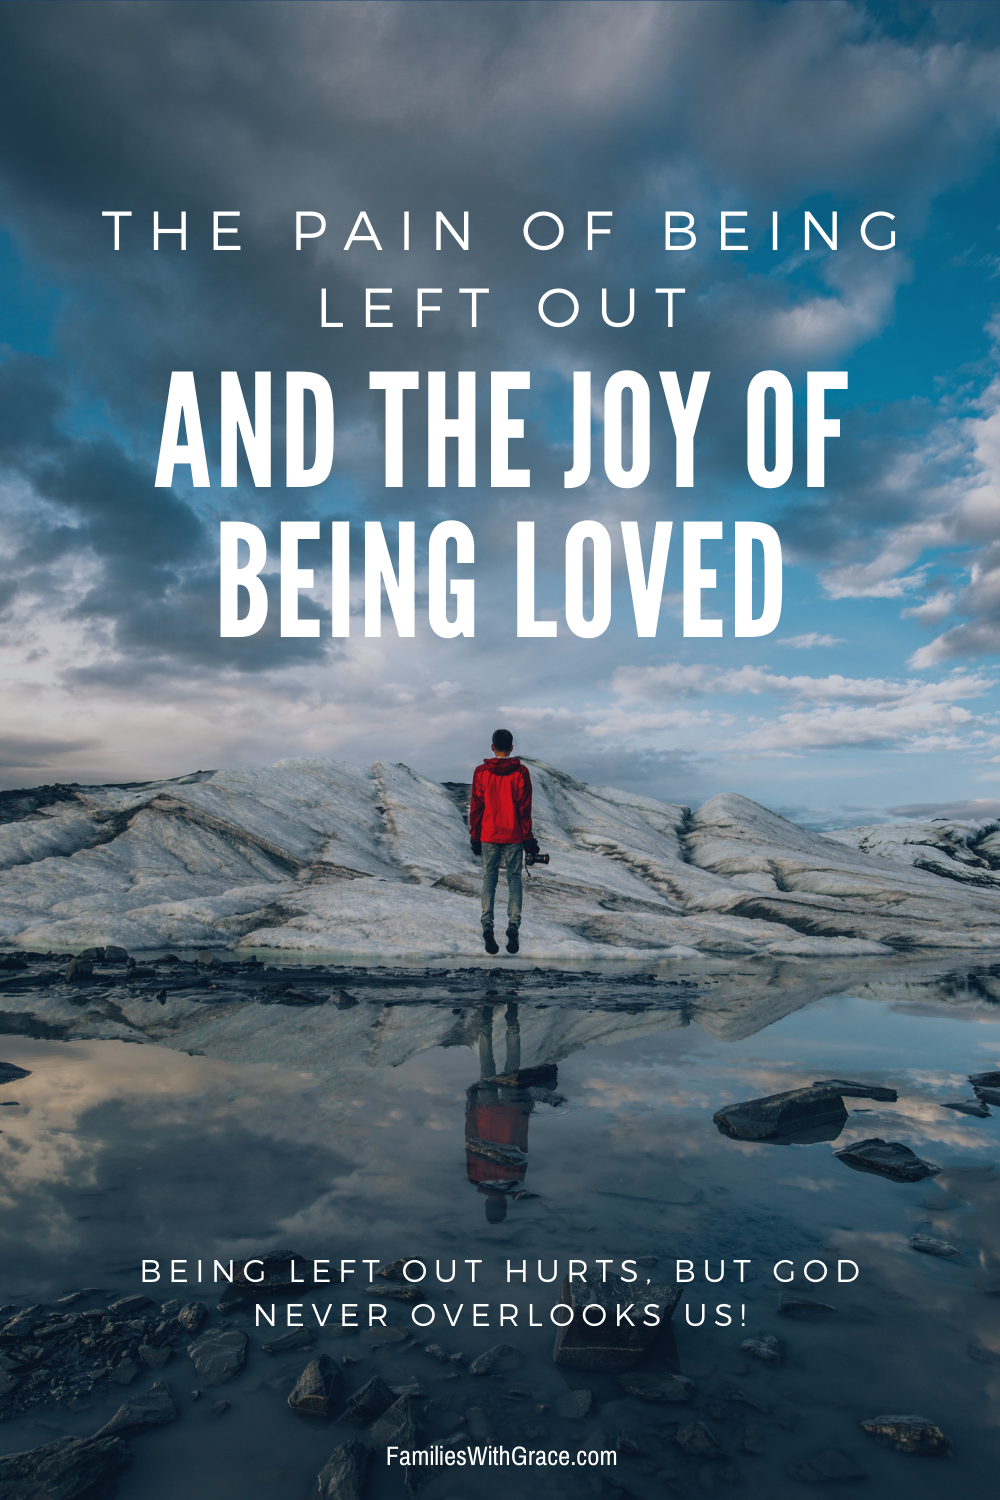 The pain of being left out and the joy of being loved